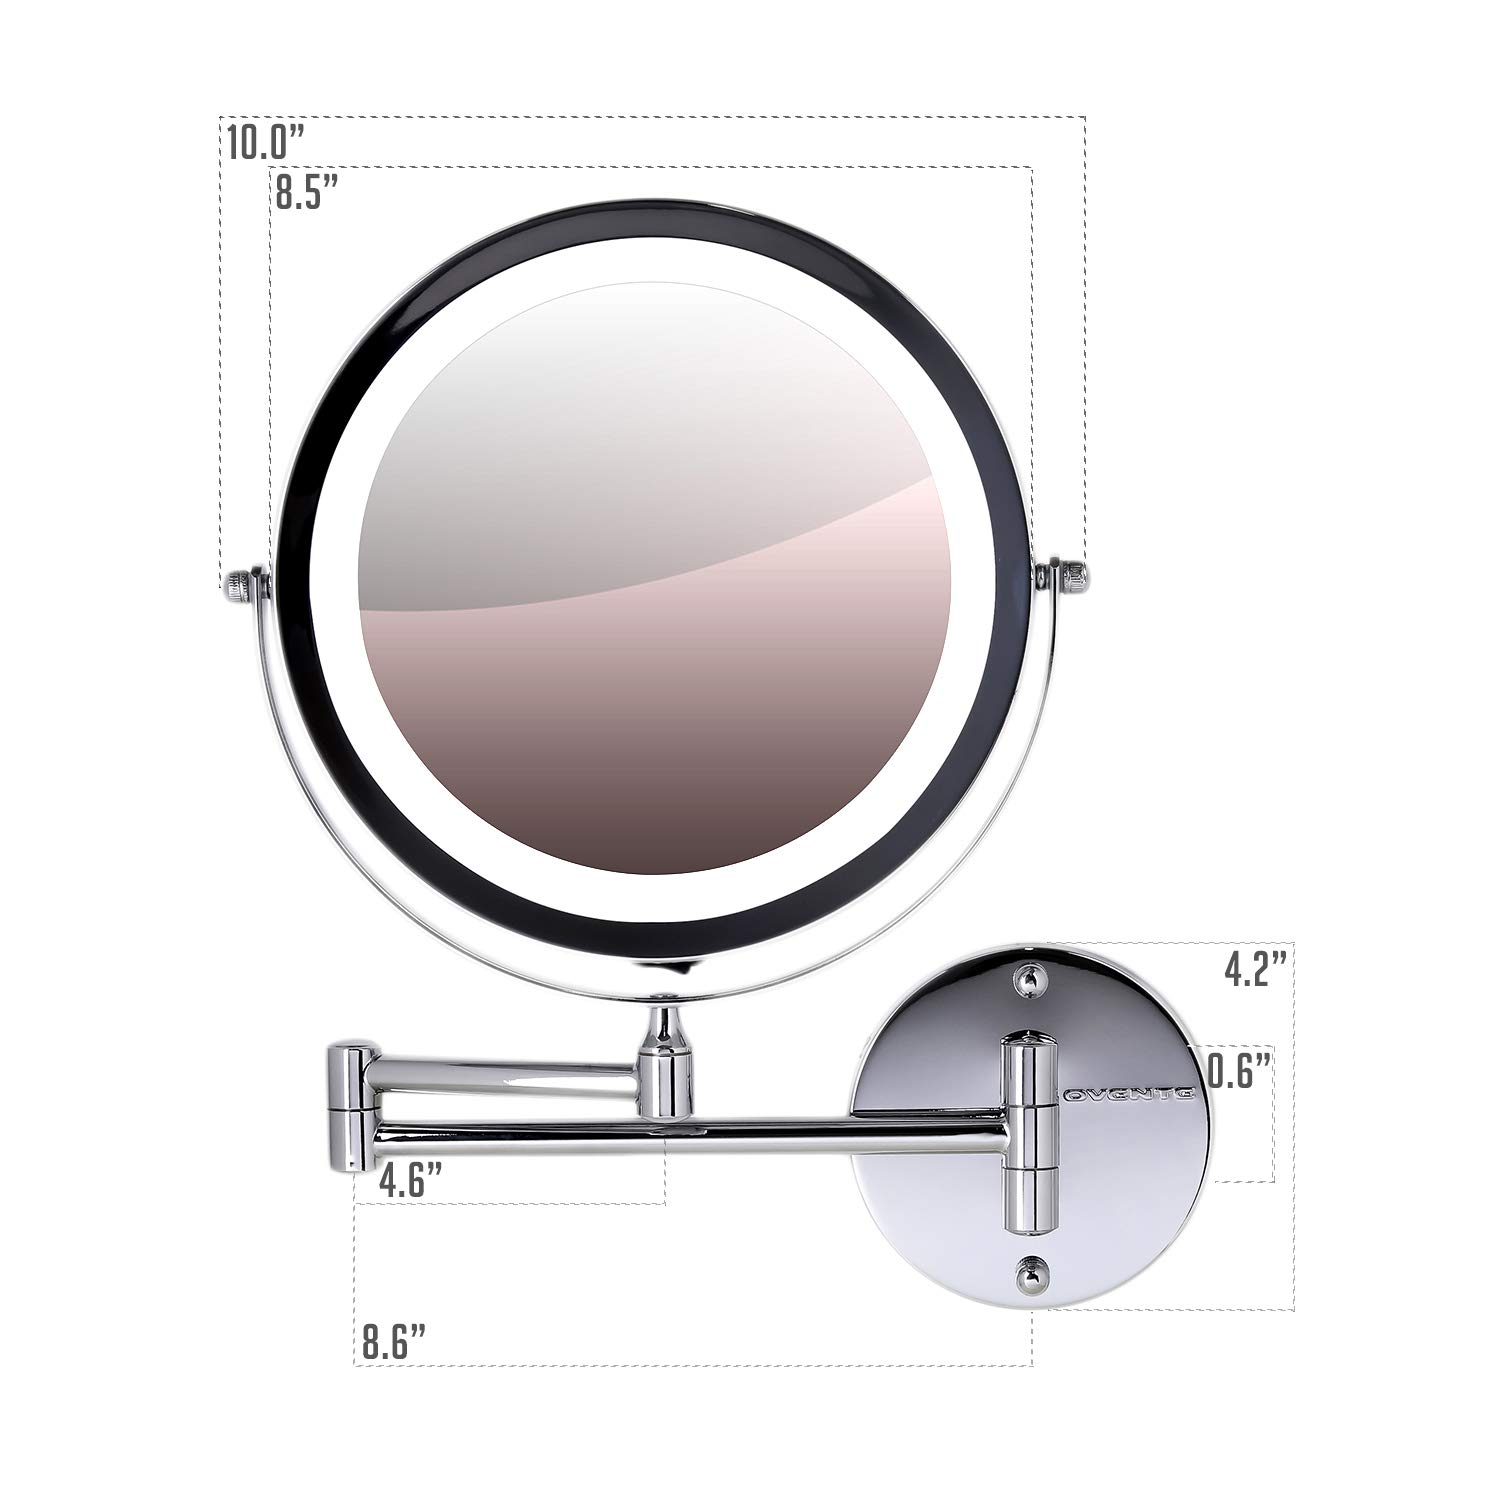 Ovente Wall Mounted Vanity Makeup Mirror 8.5 Inch with 7X Magnification and LED Light MFW85ABZ1X7X 360 Degree Swivel Rotation with Distortion Free View 4 AAA Batteries Operated Antique Bronze